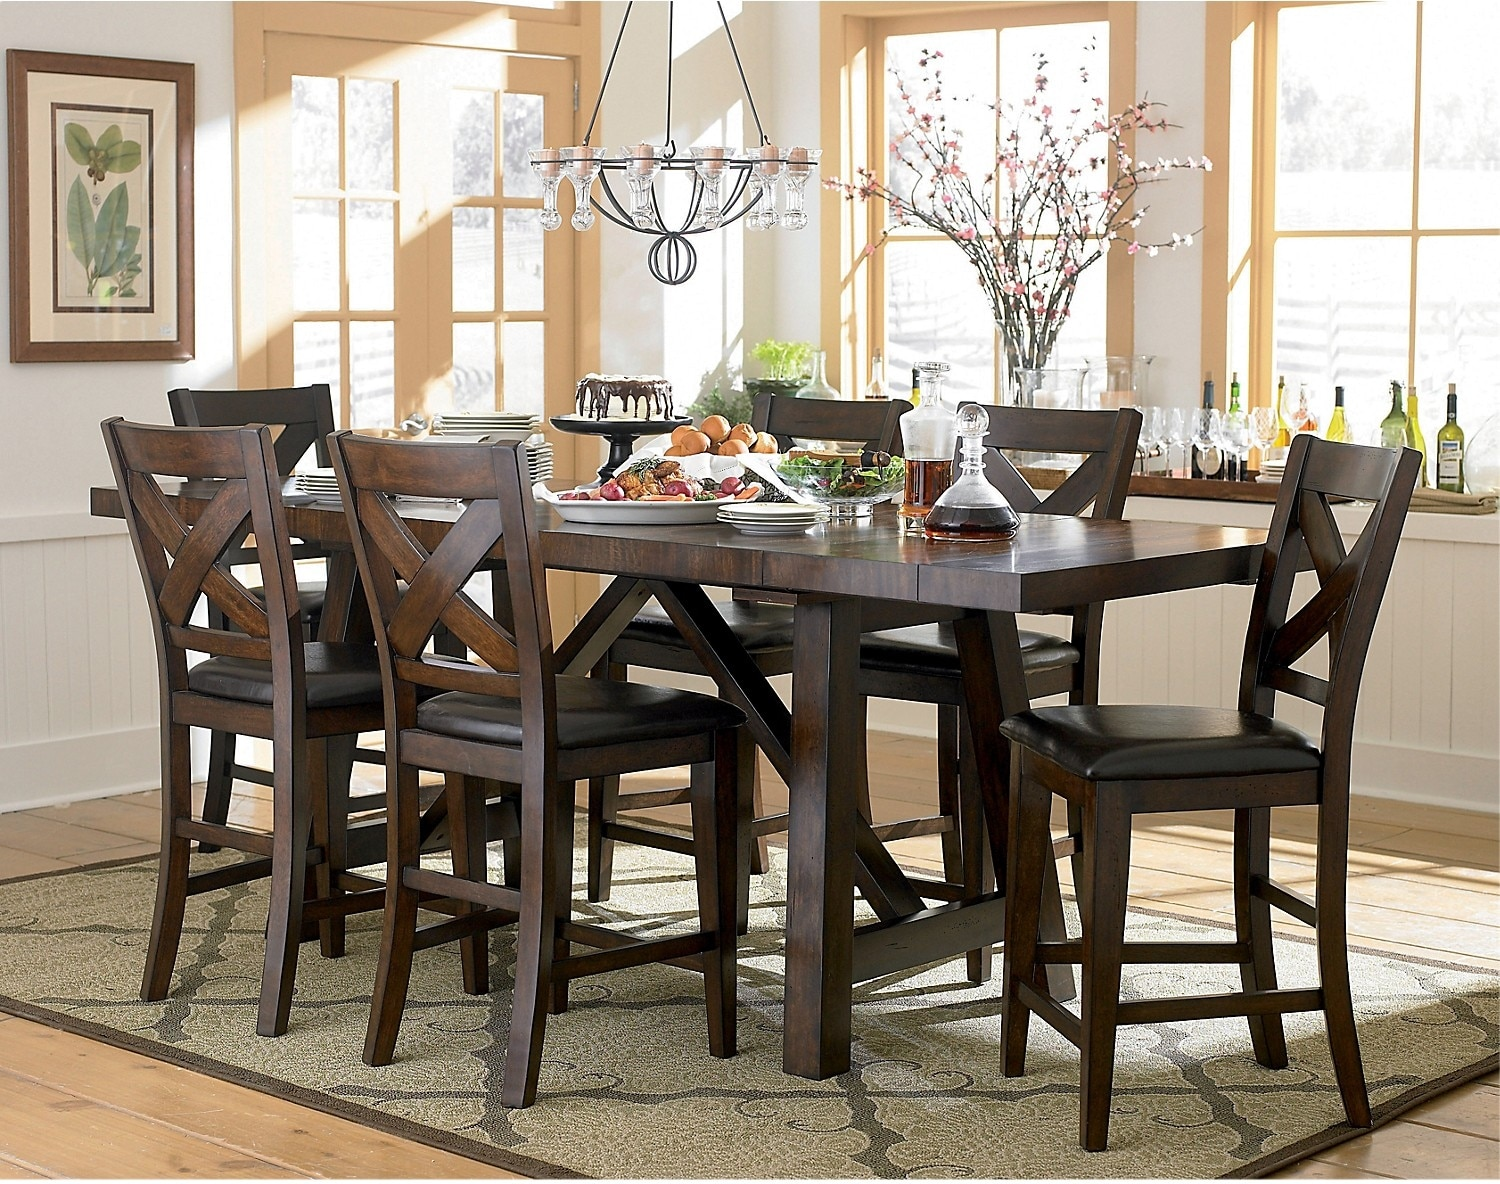 Adara 8-Piece Counter Height Dining Package